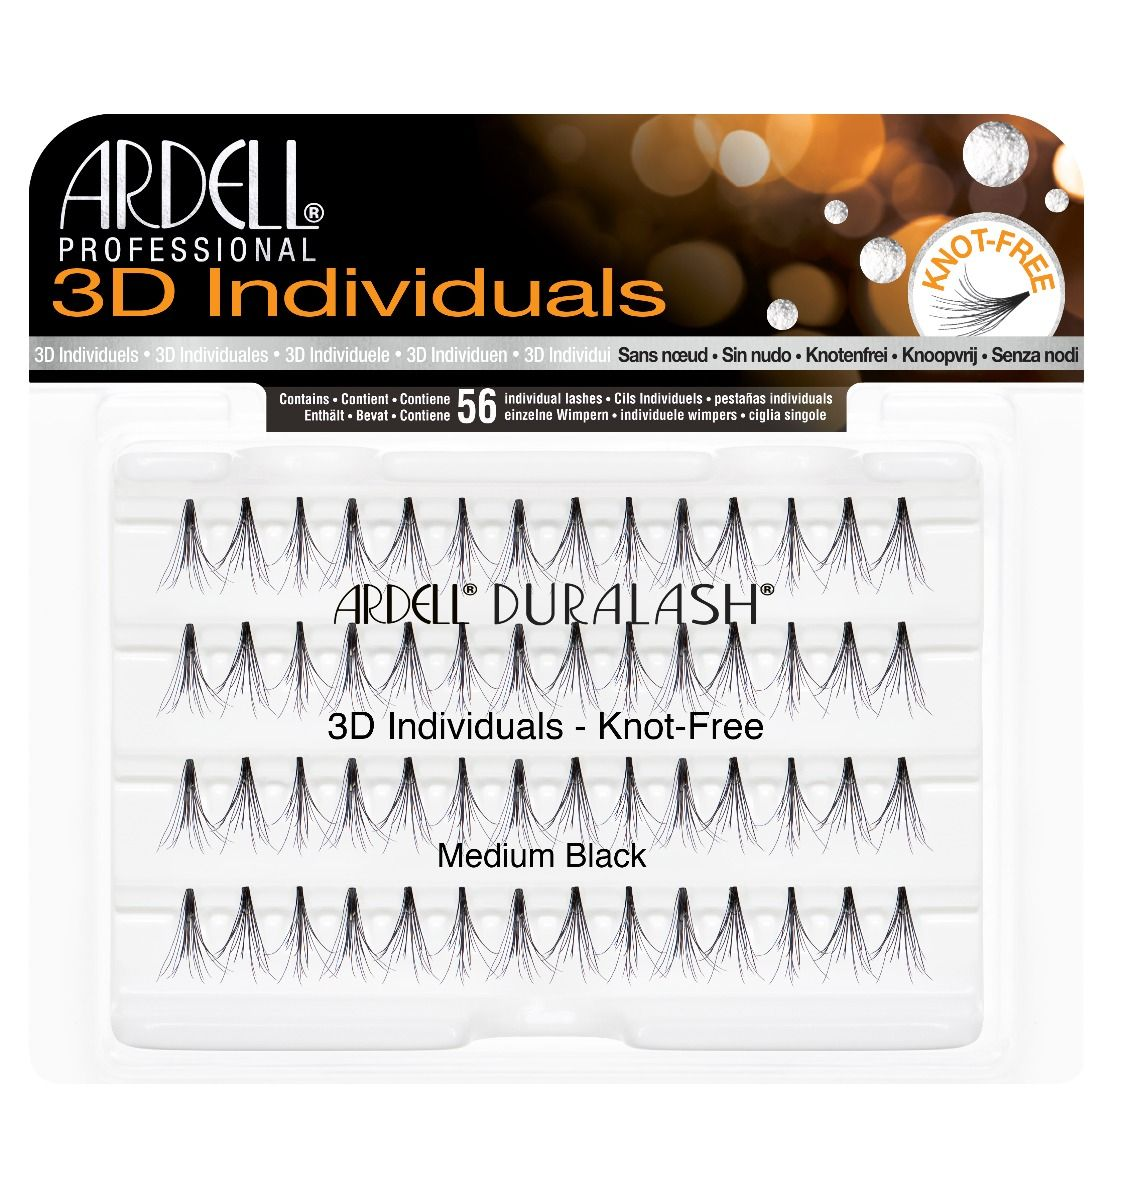 Ardell 3D Individuals Medium Black